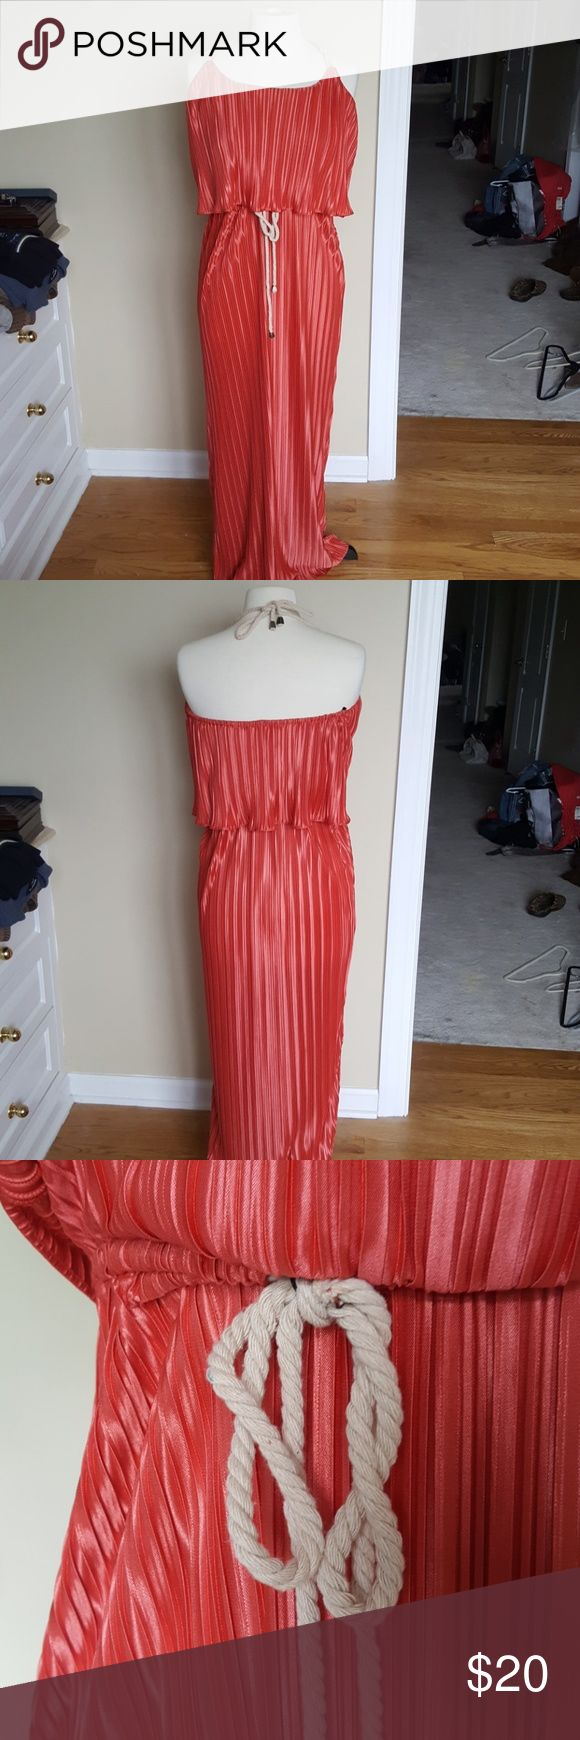 NWOT boston proper bright nautical maxi dress This dress screams summer!! Vivid orangey coral with rope ties and lightweight breezy fabric. What isn't to love! Never worn. I can't say enough about it!! Says medium but could possibly fit a little small. Make me an offer! Boston Proper Dresses Maxi